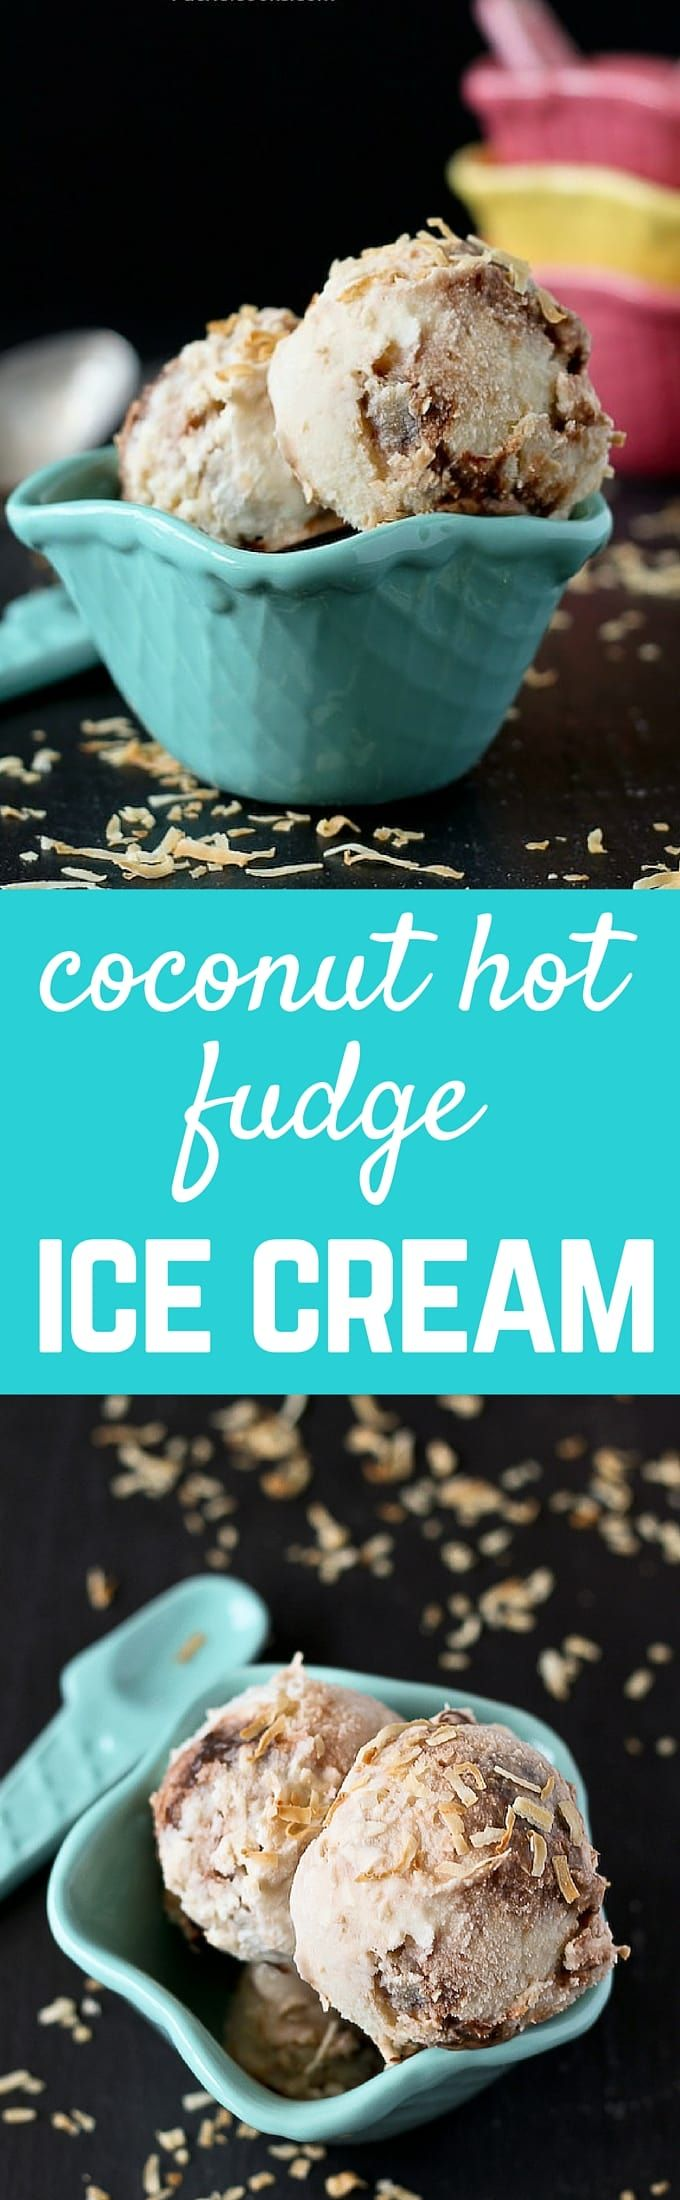 Coconut Hot Fudge Ice Cream - the perfect treat to beat the heat! Get the recipe on RachelCooks.com!